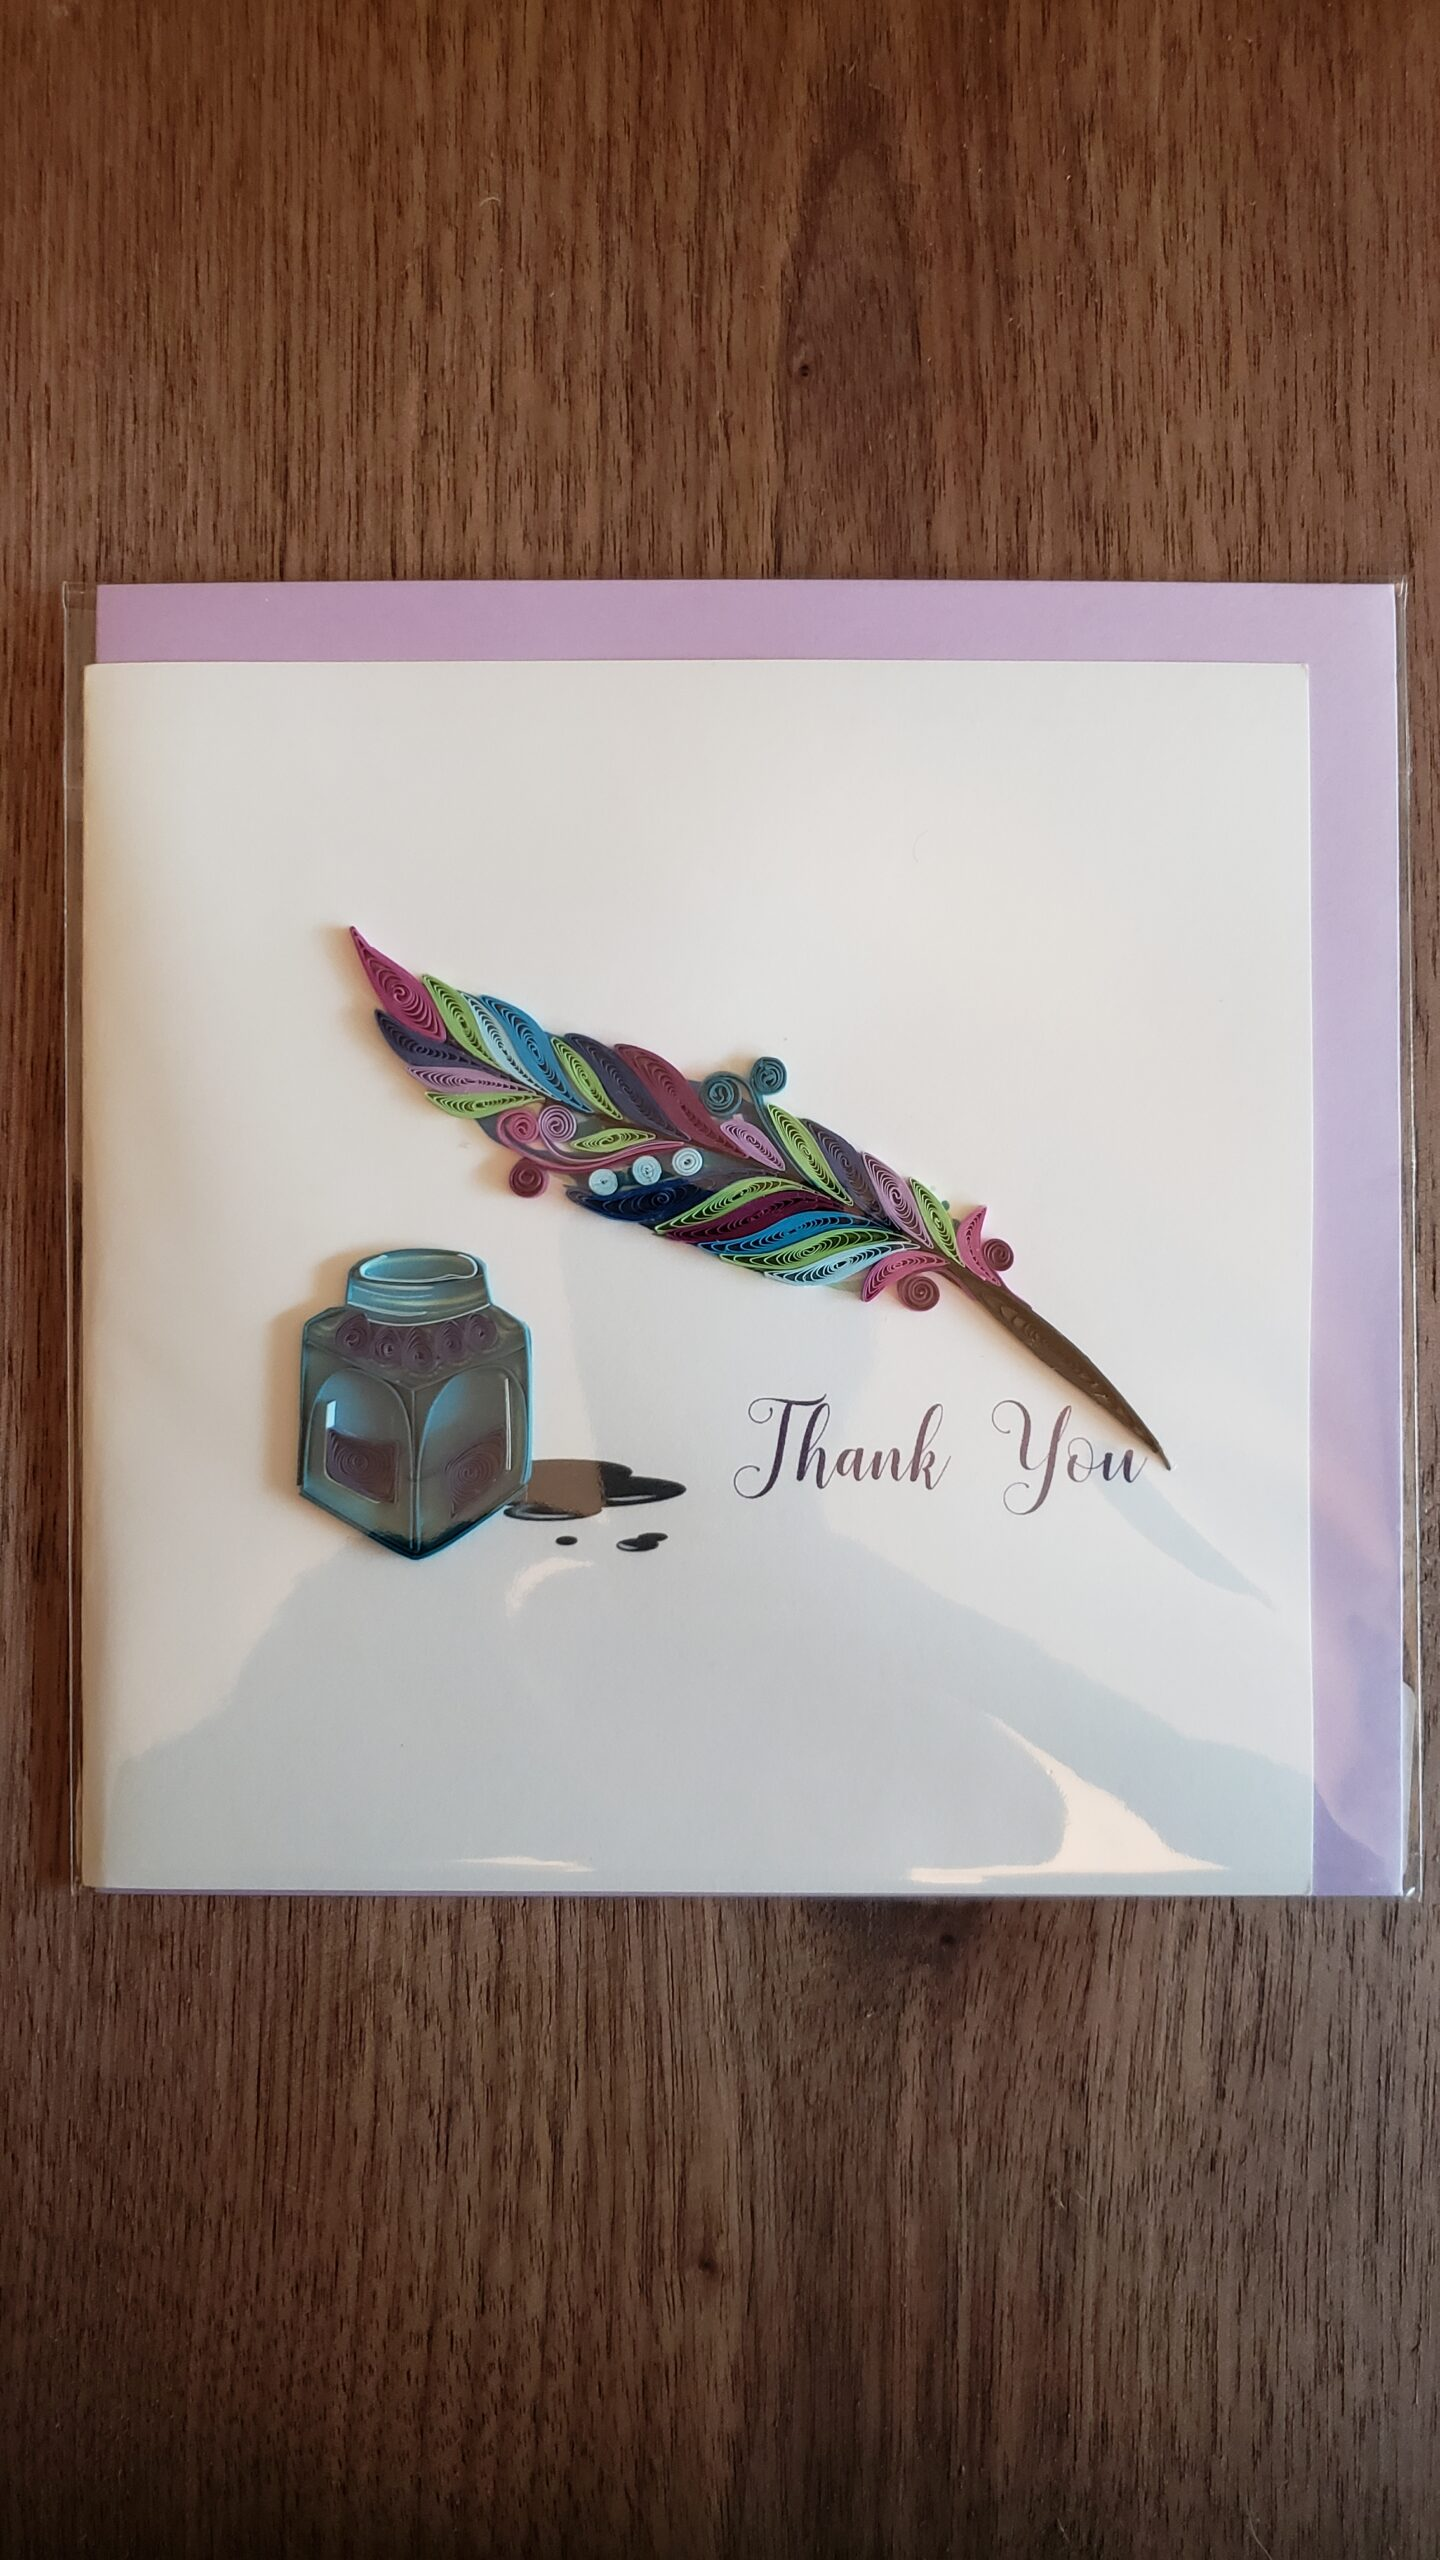 Quill & Ink Thank You Card 6 in. x 6 in.